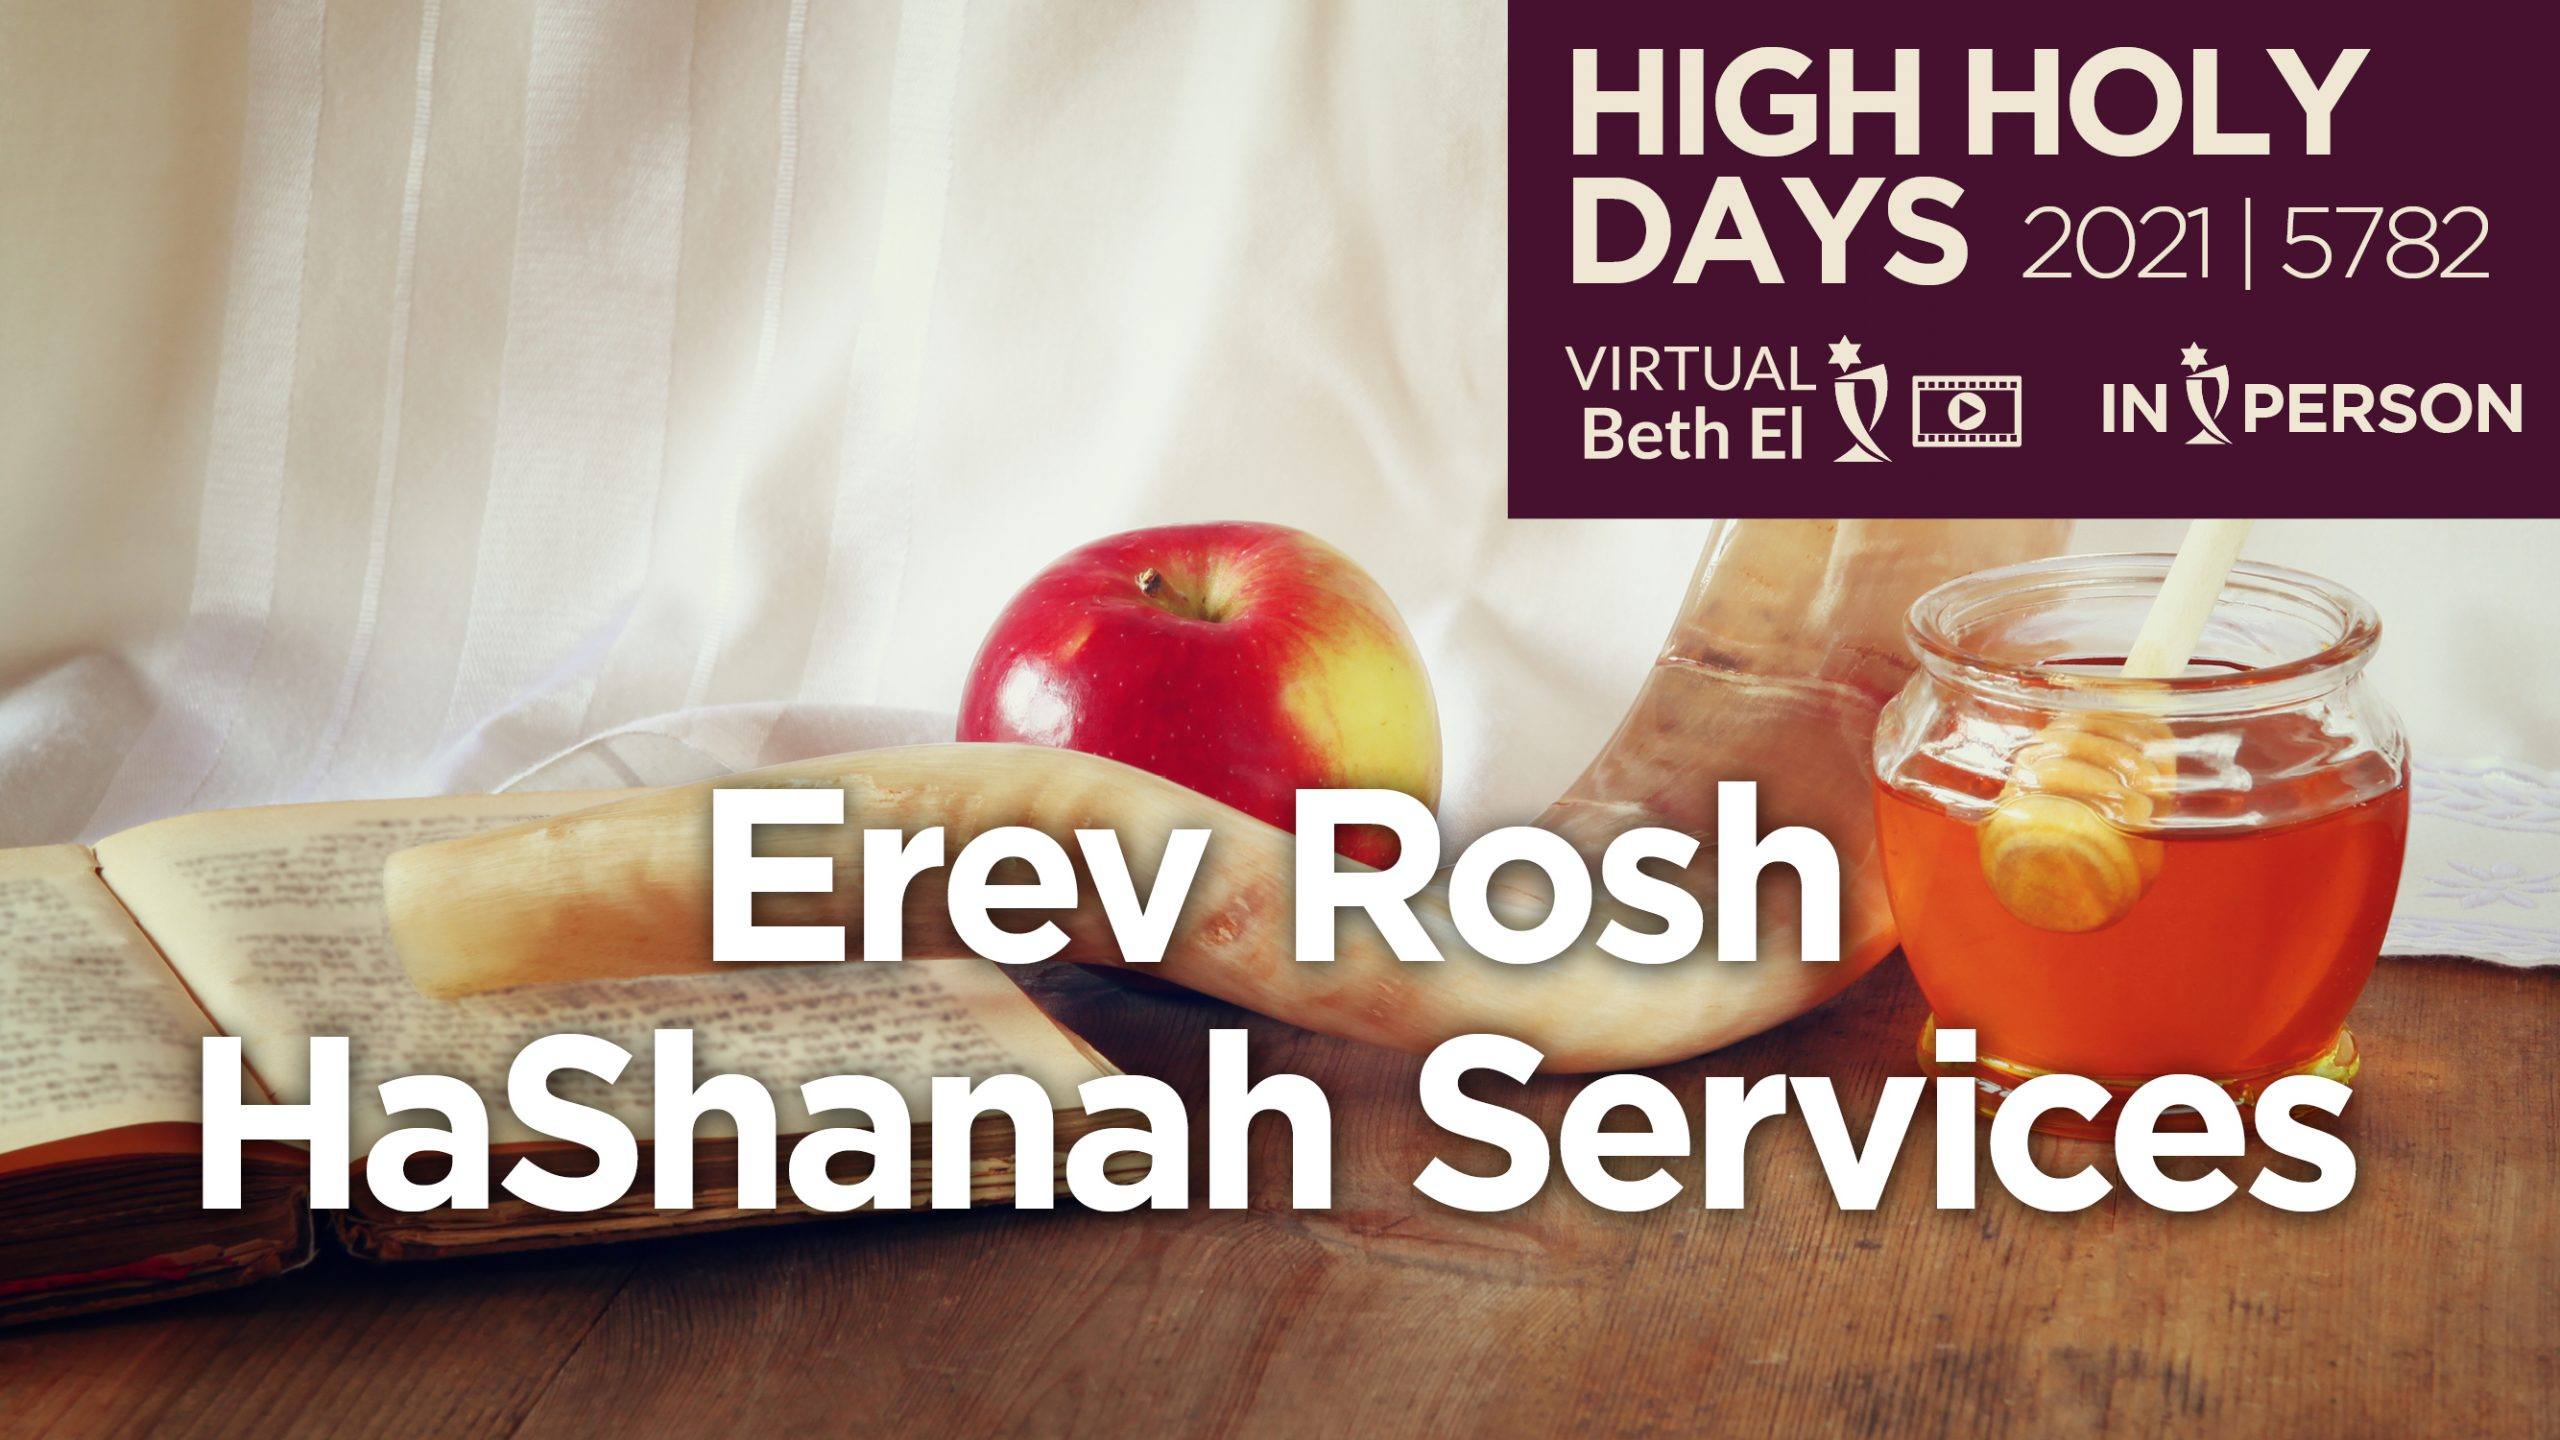 Erev Rosh HaShanah Services Announcement Graphic for 2021 5782